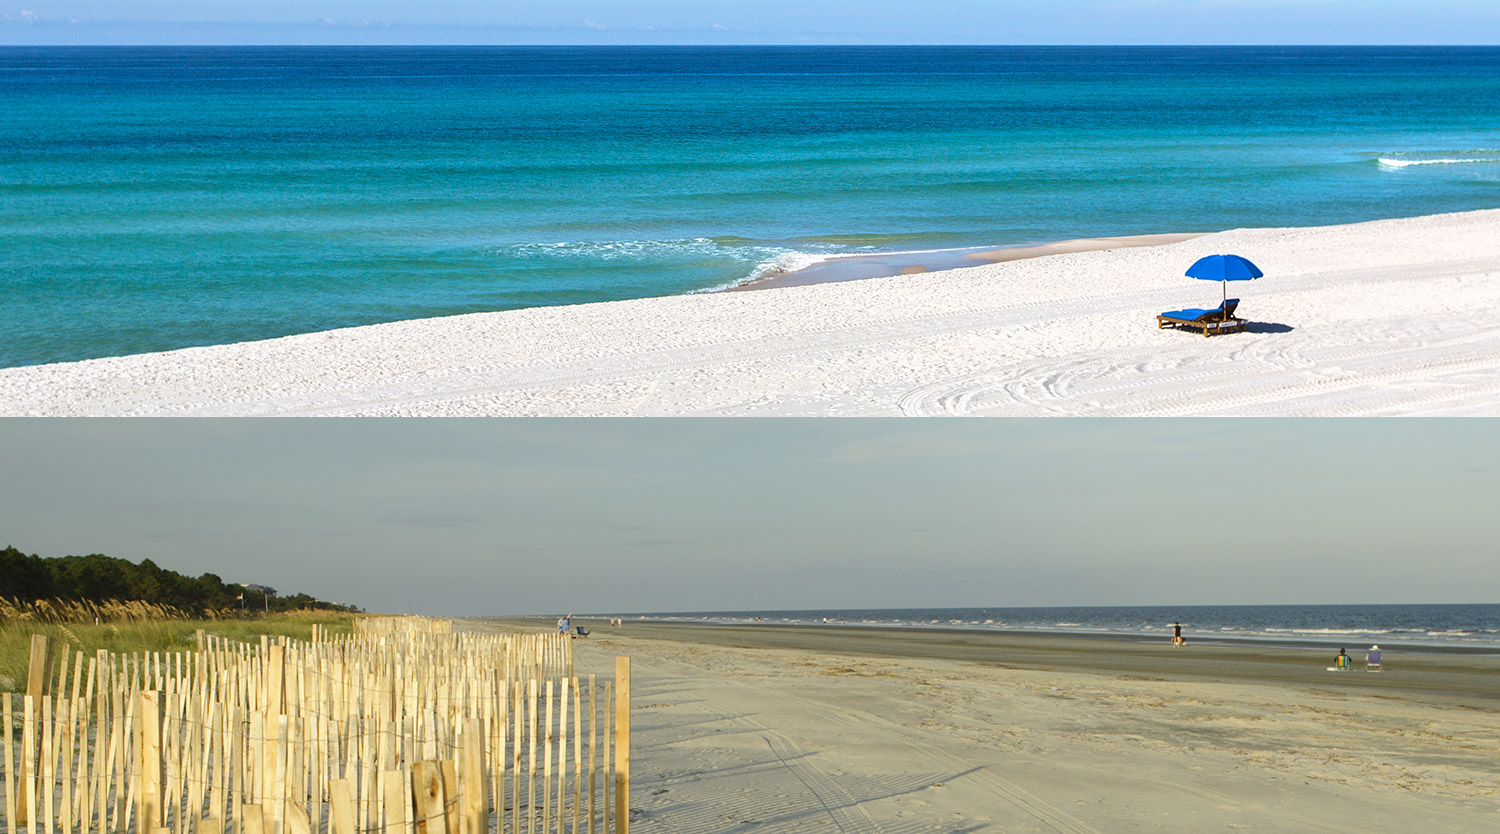 Destin vs Hilton Head Beach